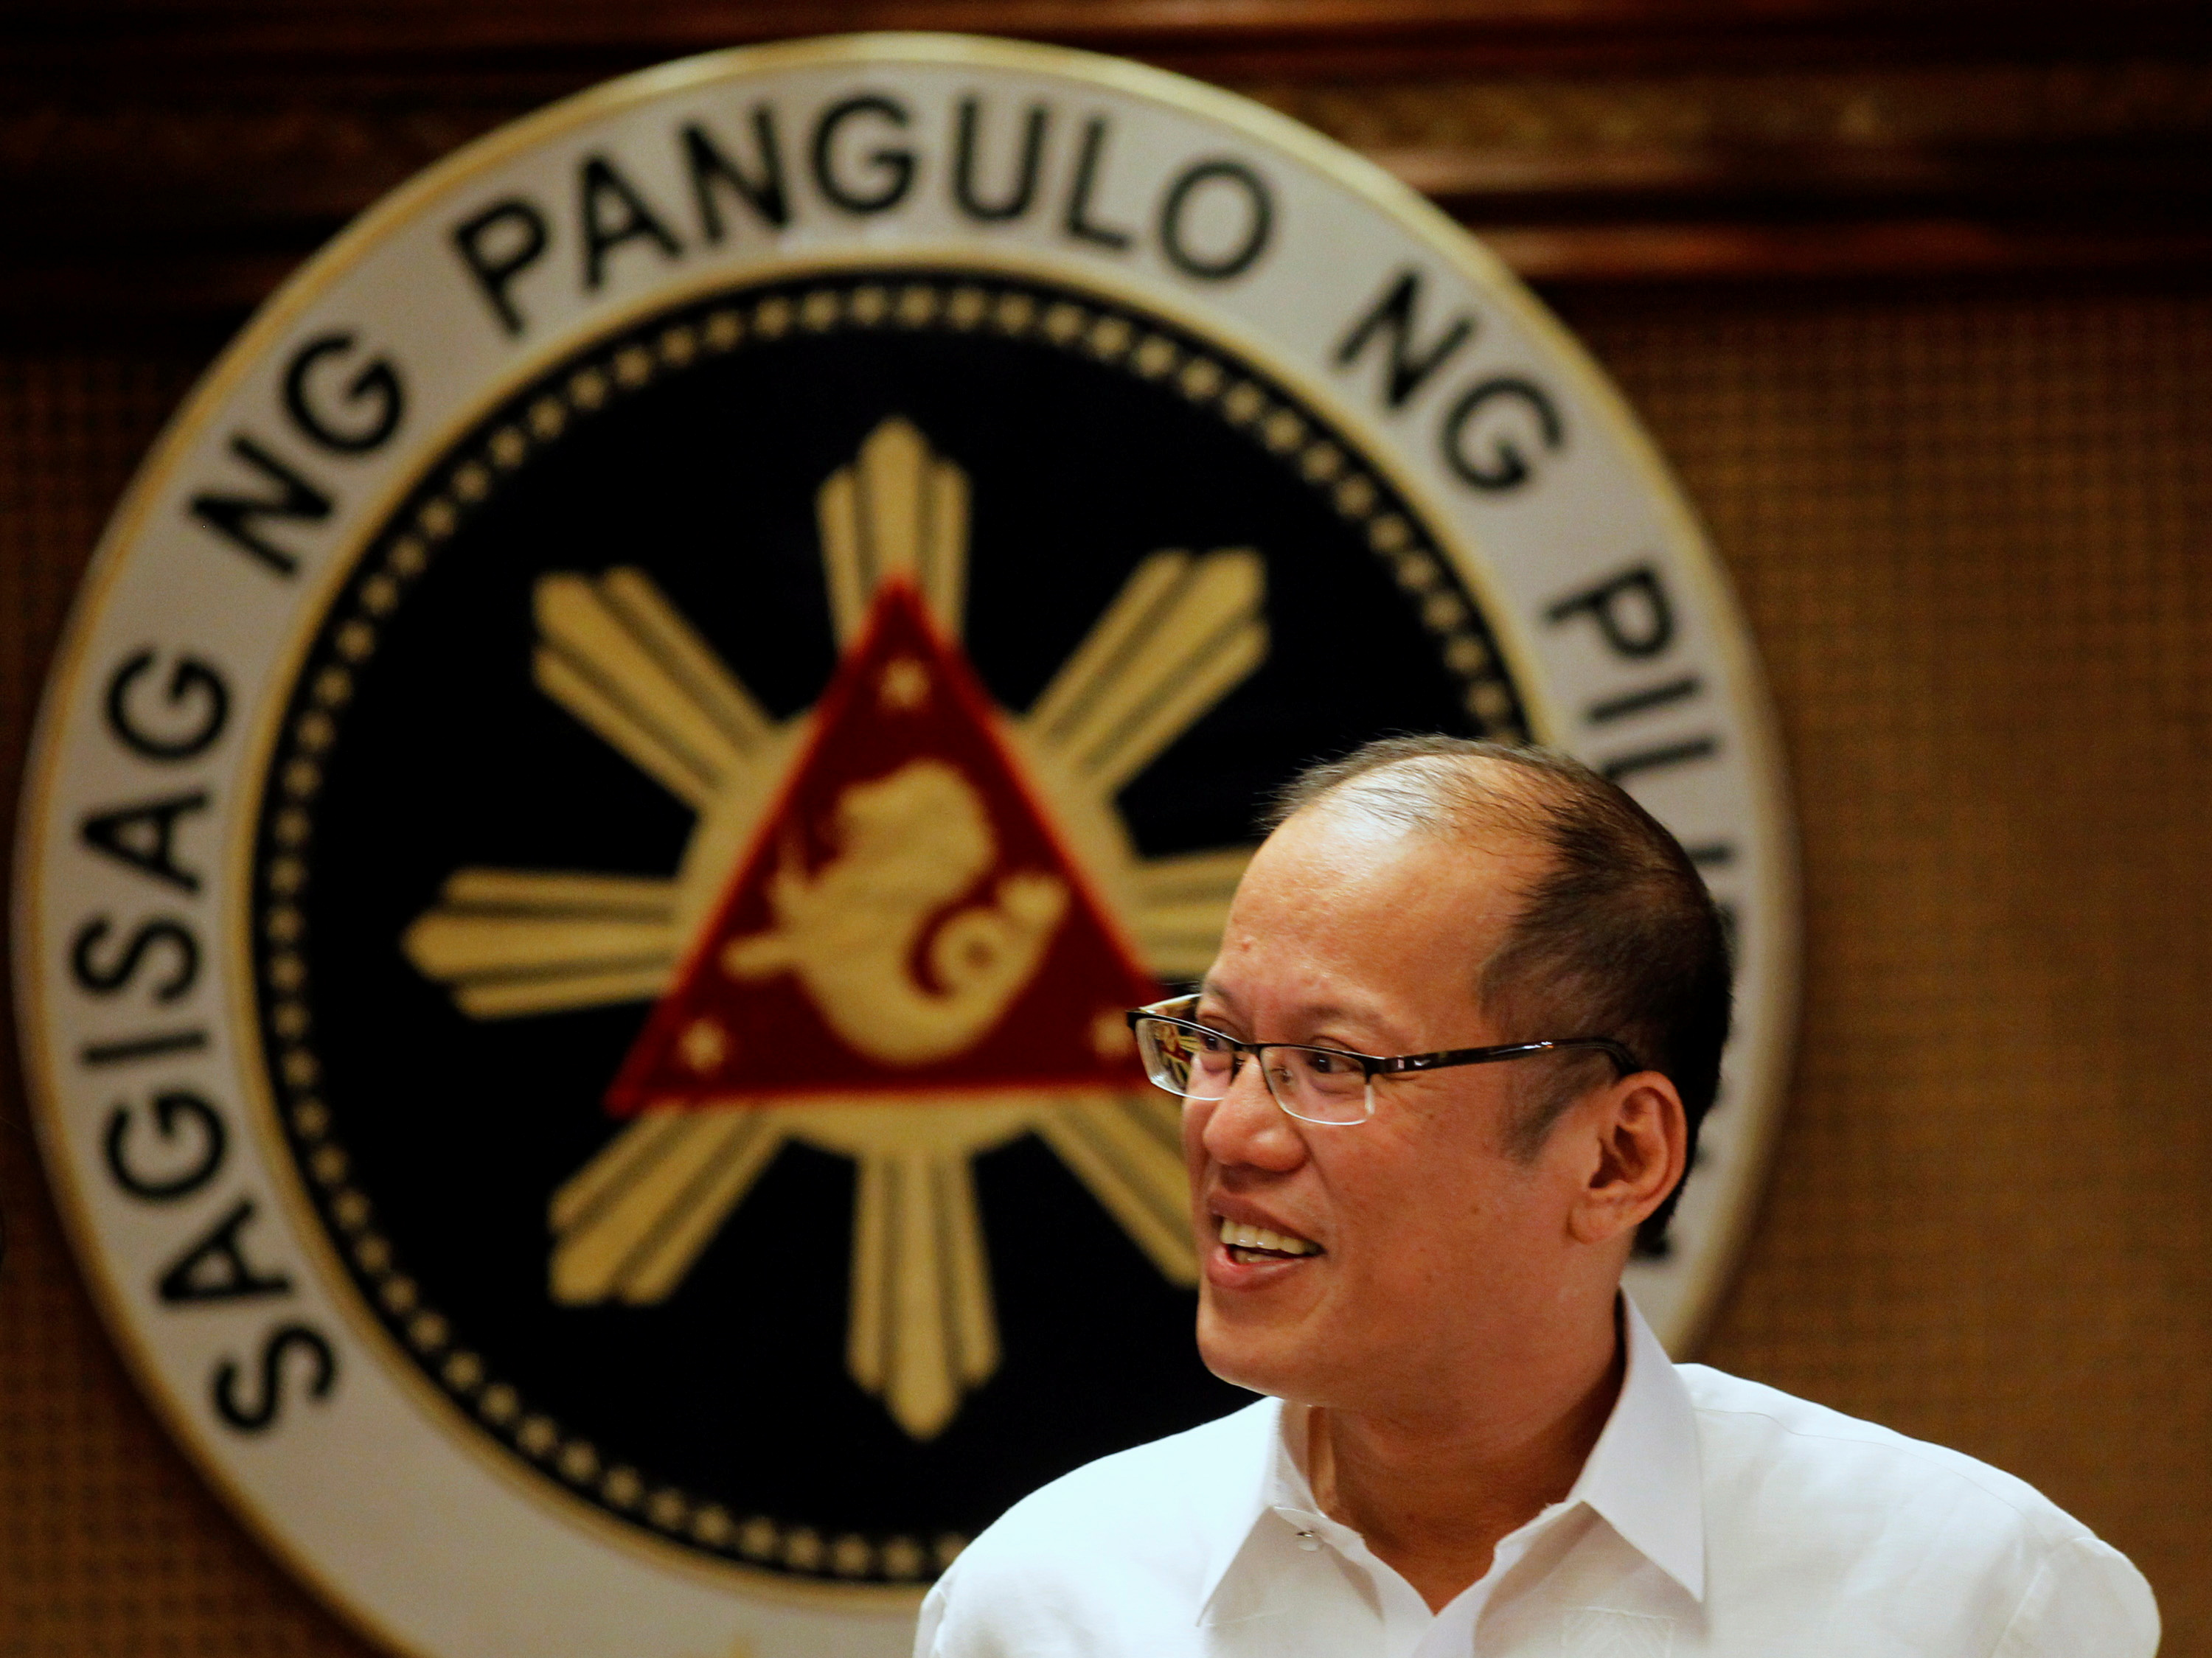 FILE PHOTO - Philippine President Benigno Aquino smiles in front of a presidential seal during a government's oral immunization program for poor families at the presidential palace in Manila July 2, 2012.  REUTERS/Erik De Castro/File Picture